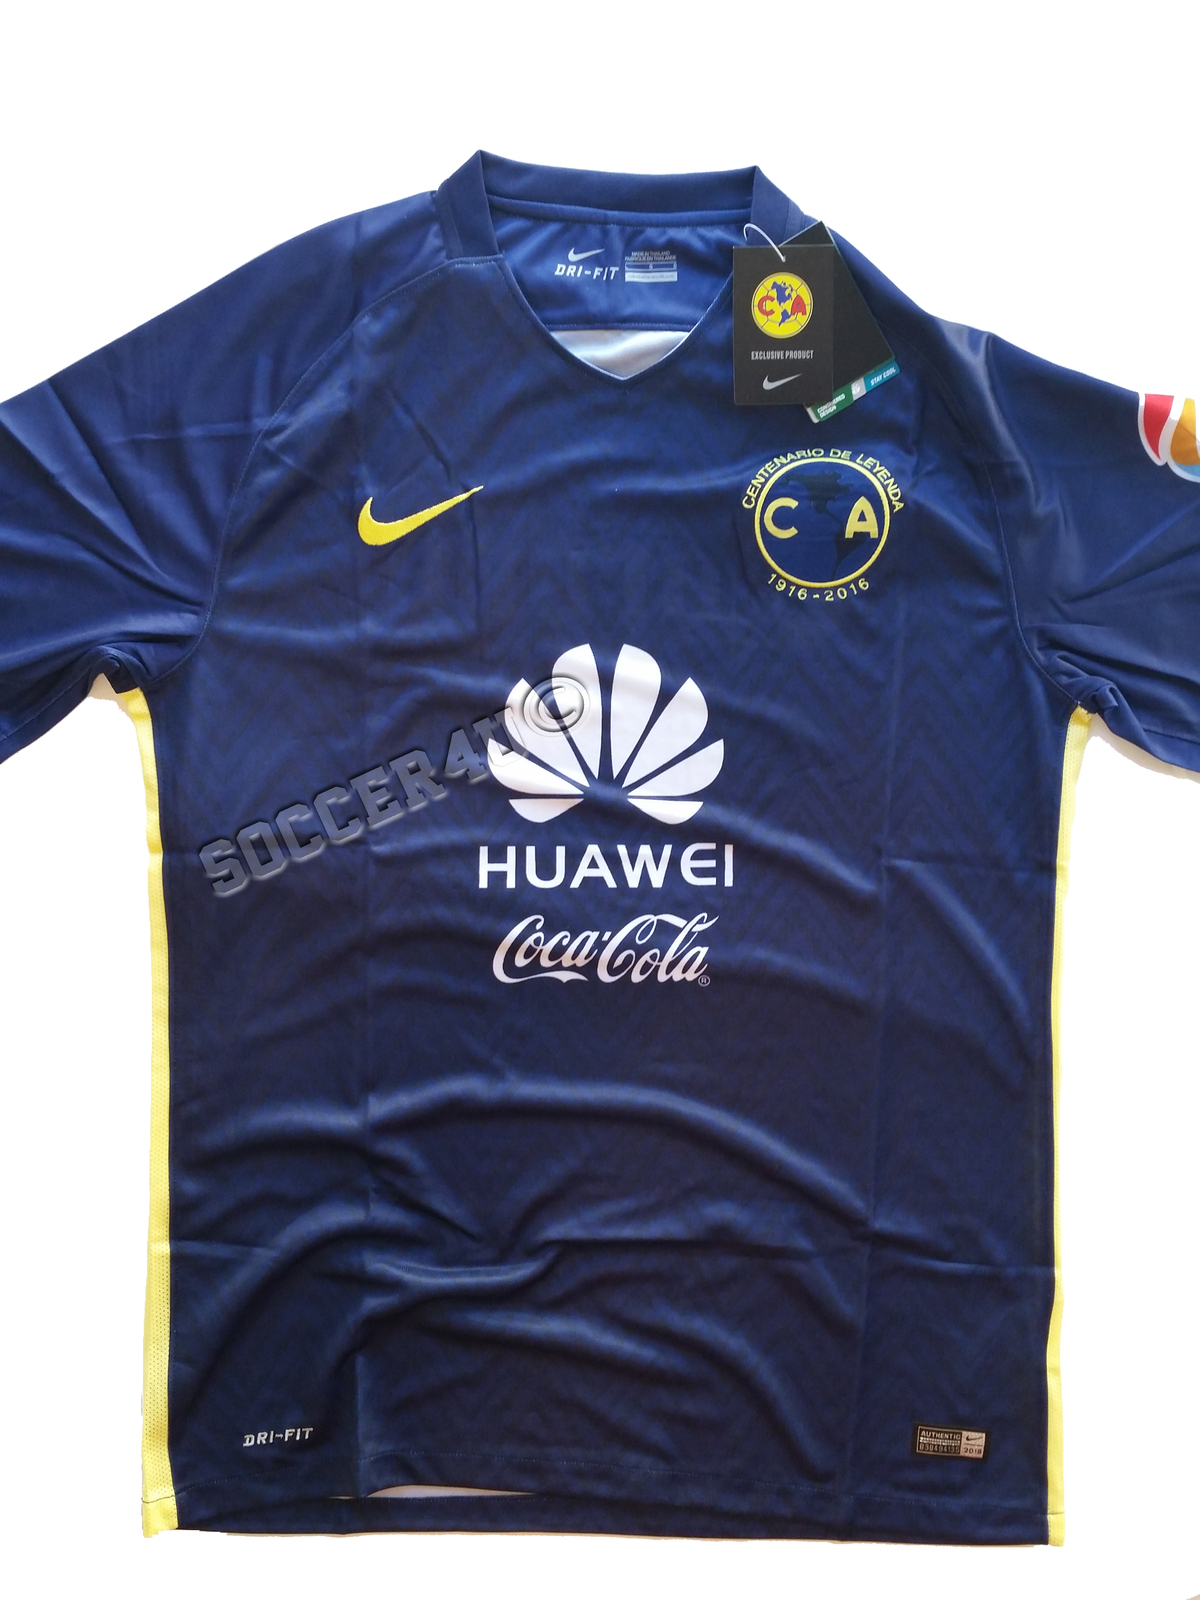 148c28b6608 Centenario Club America 2016-17 Away Jersey and 50 similar items. 20161001  123614